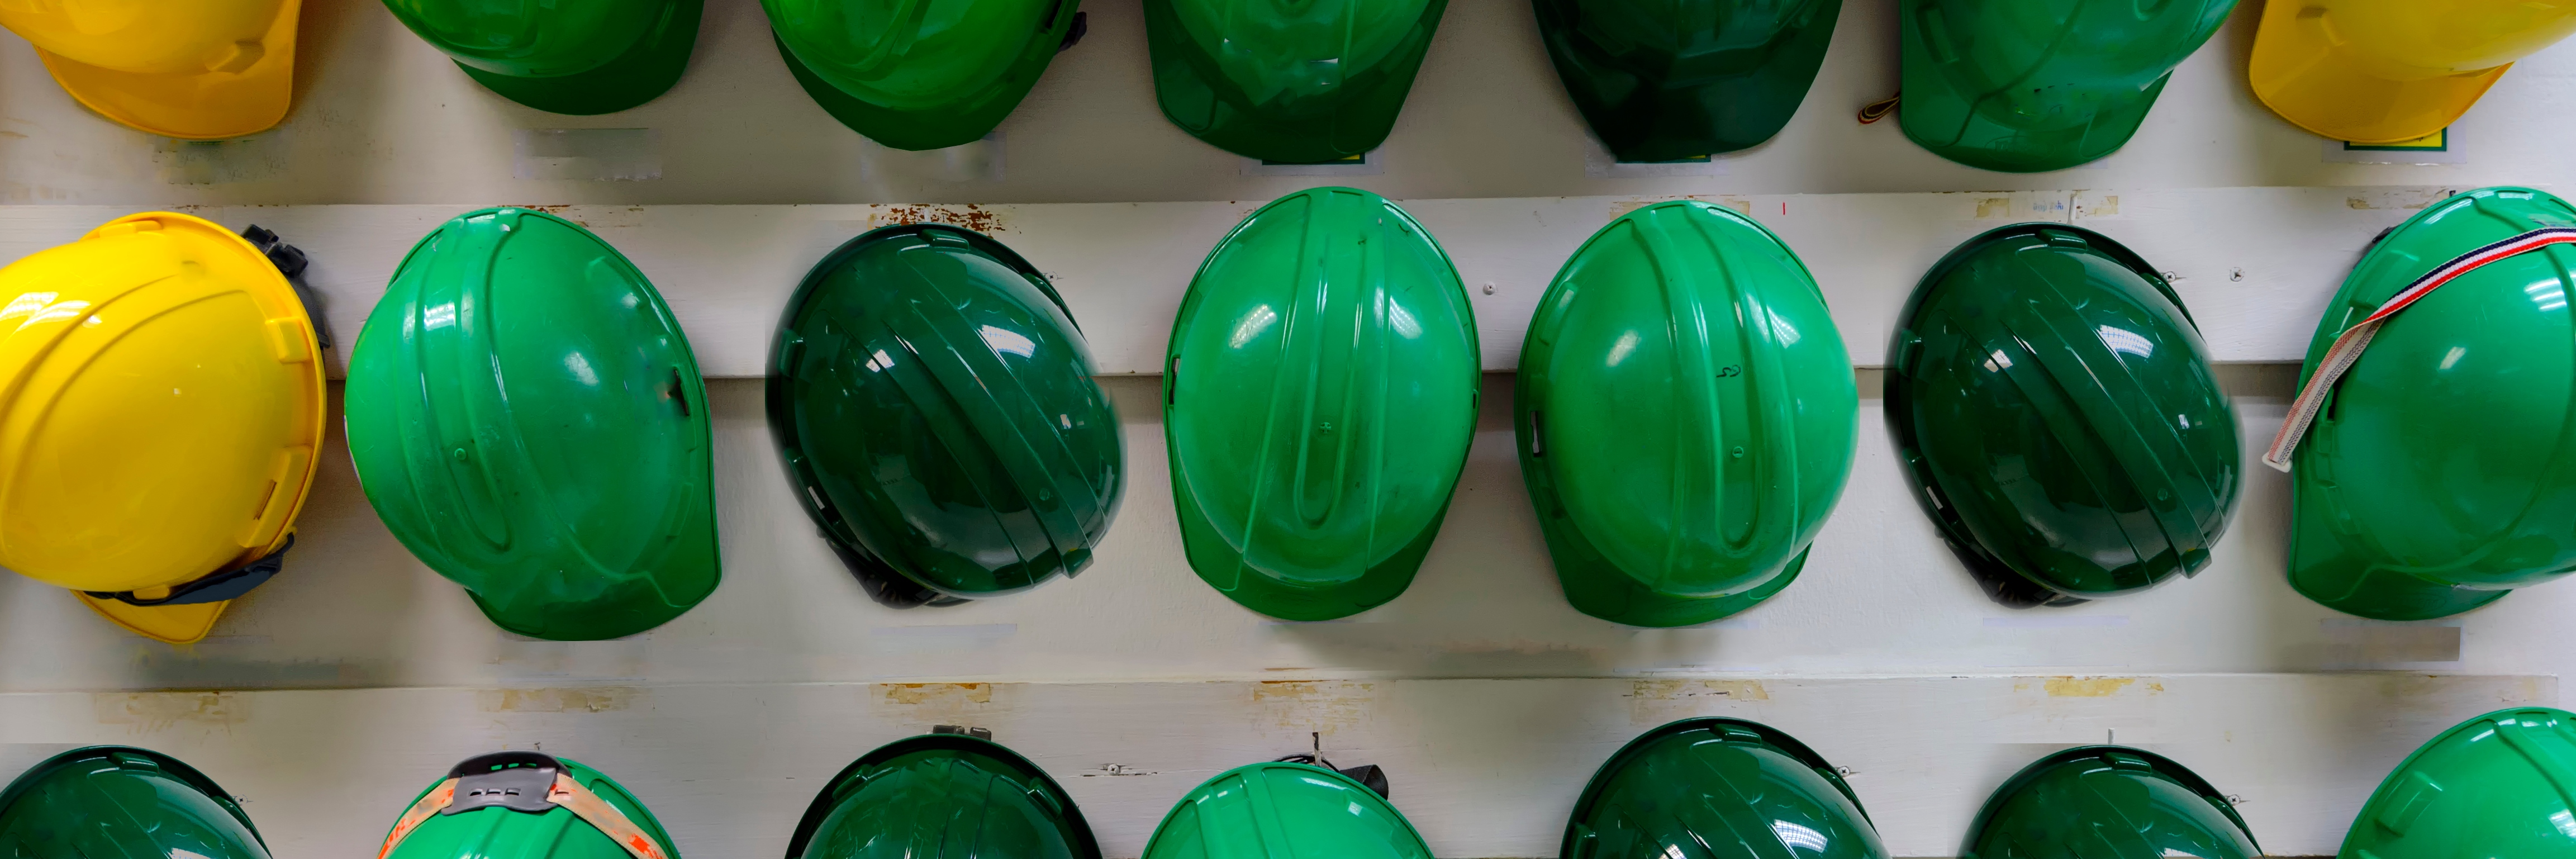 Hard hats - Engineering Risk Management Services